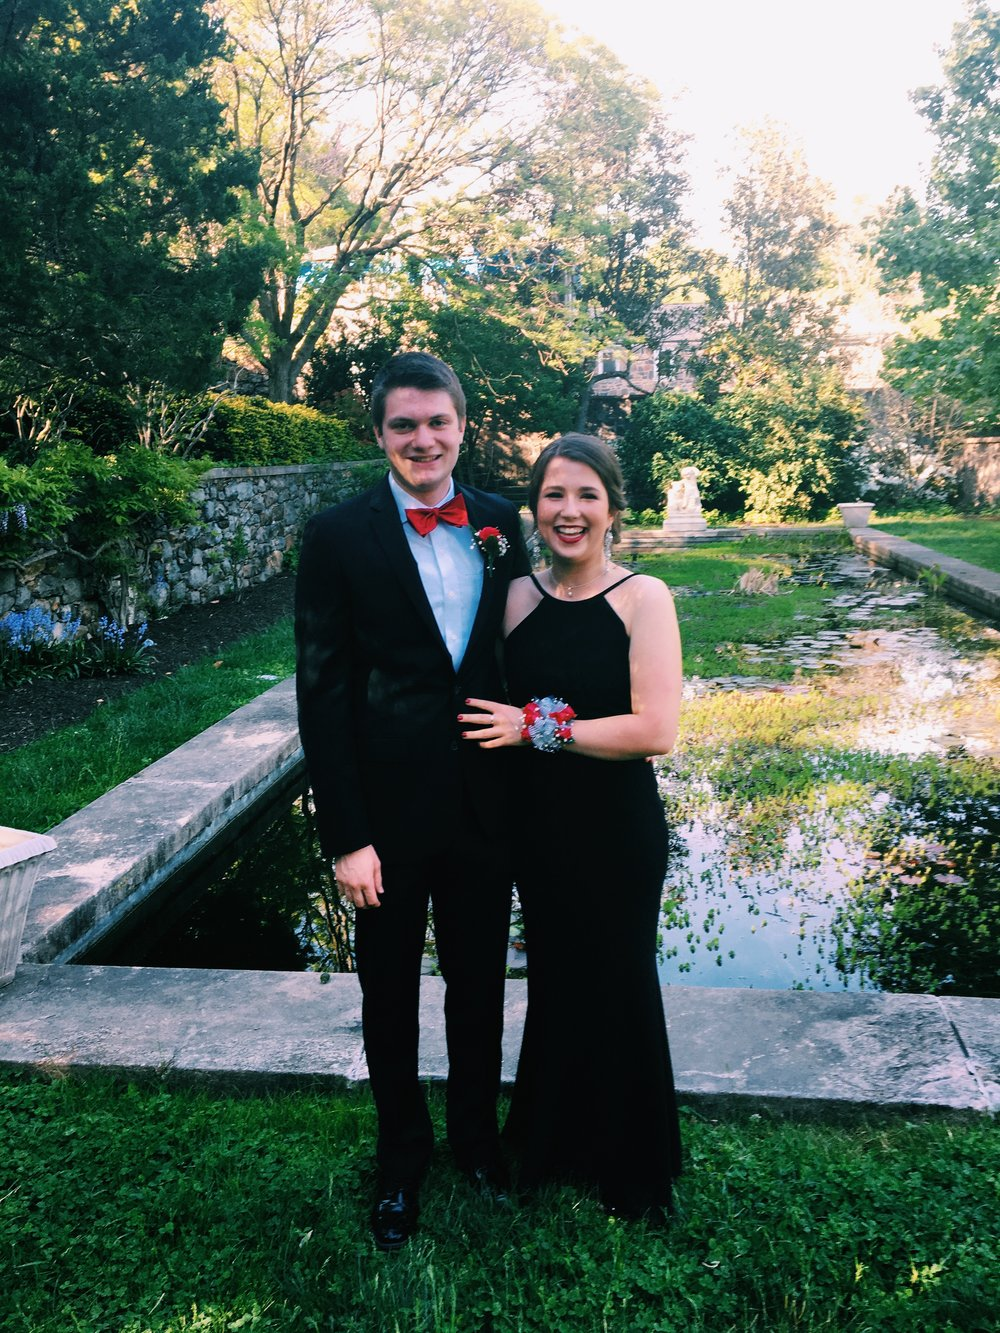 Right: Seniors Lilly Coleman and Pat Keegan stand in front of a reflecting pool for prom pictures. Photo courtesy of Lilly Coleman